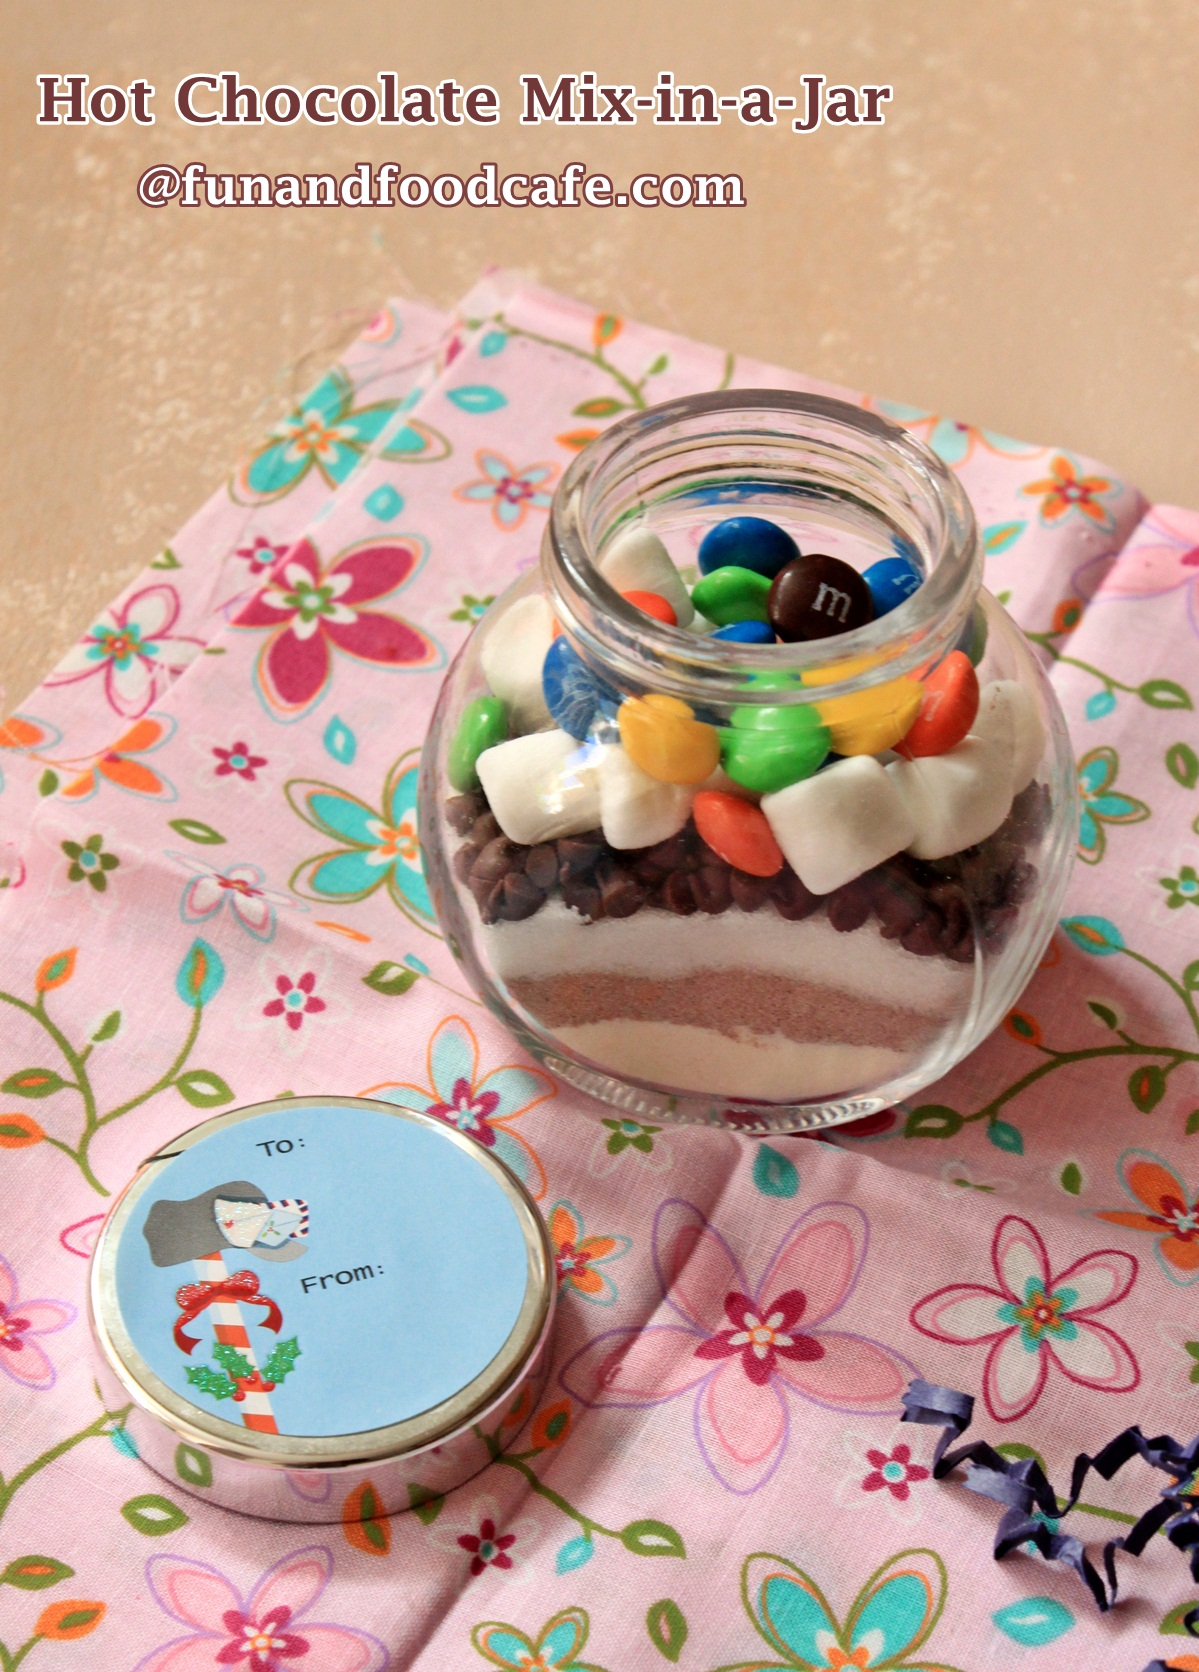 Hot Cocoa Mix-In-a-Jar